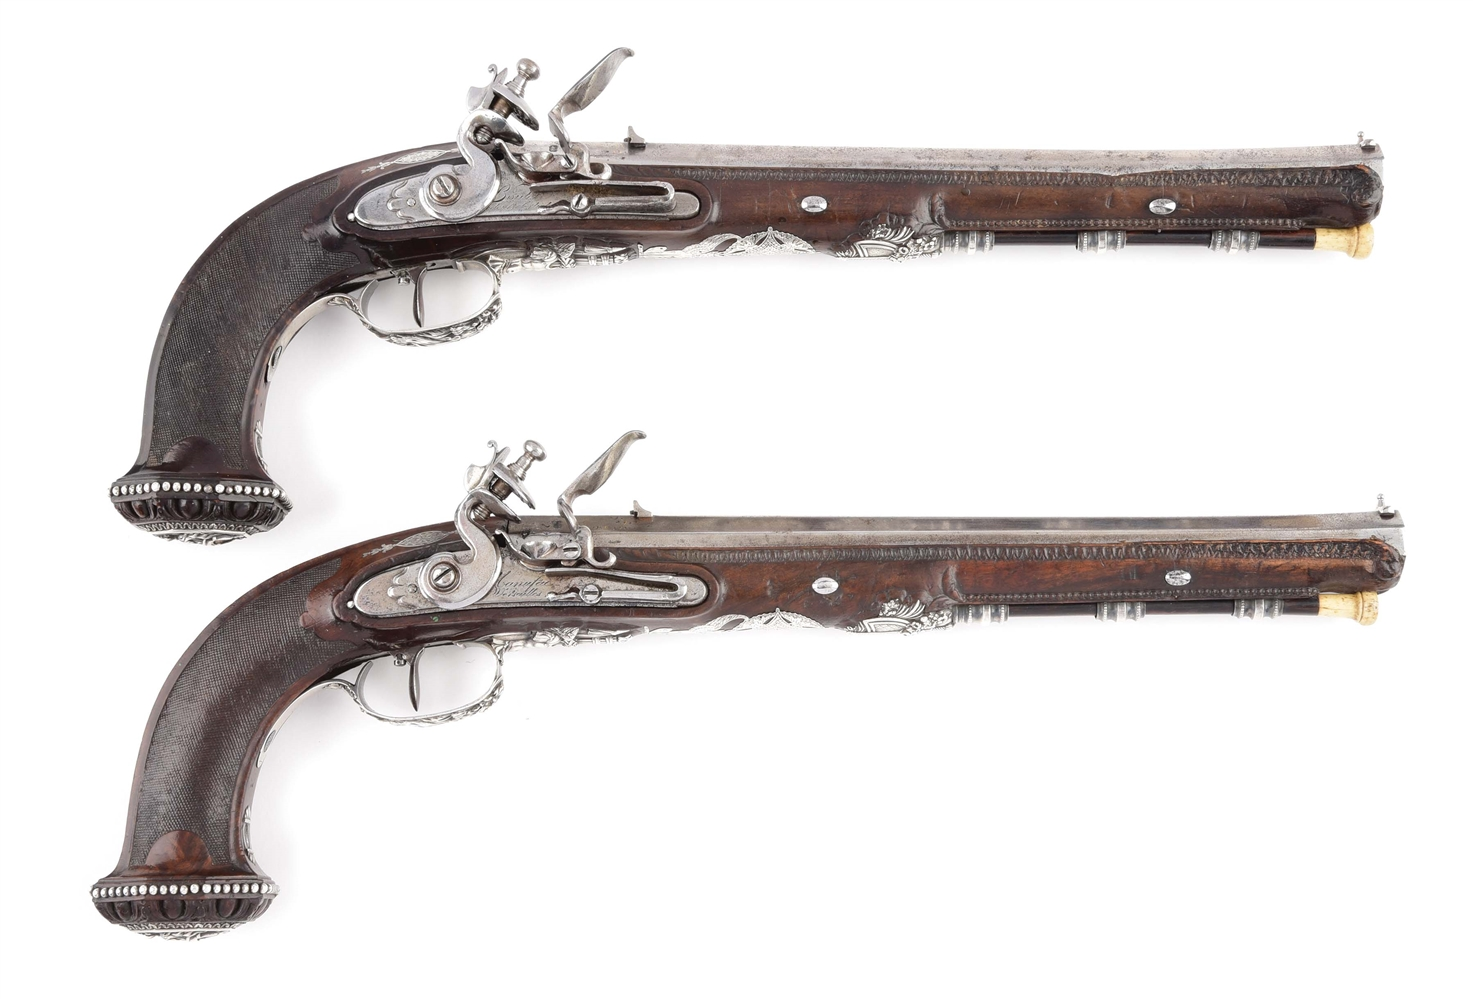 A RARE AND IMPRESSIVE PAIR OF PRESENTATION GRADE OFFICER'S FLINTLOCK PISTOLS BY NICHOLAS BOUTET A VERSAILLES, CIRCA 1800, FROM THE COLLECTION OF DR. JOHN LATTIMER.